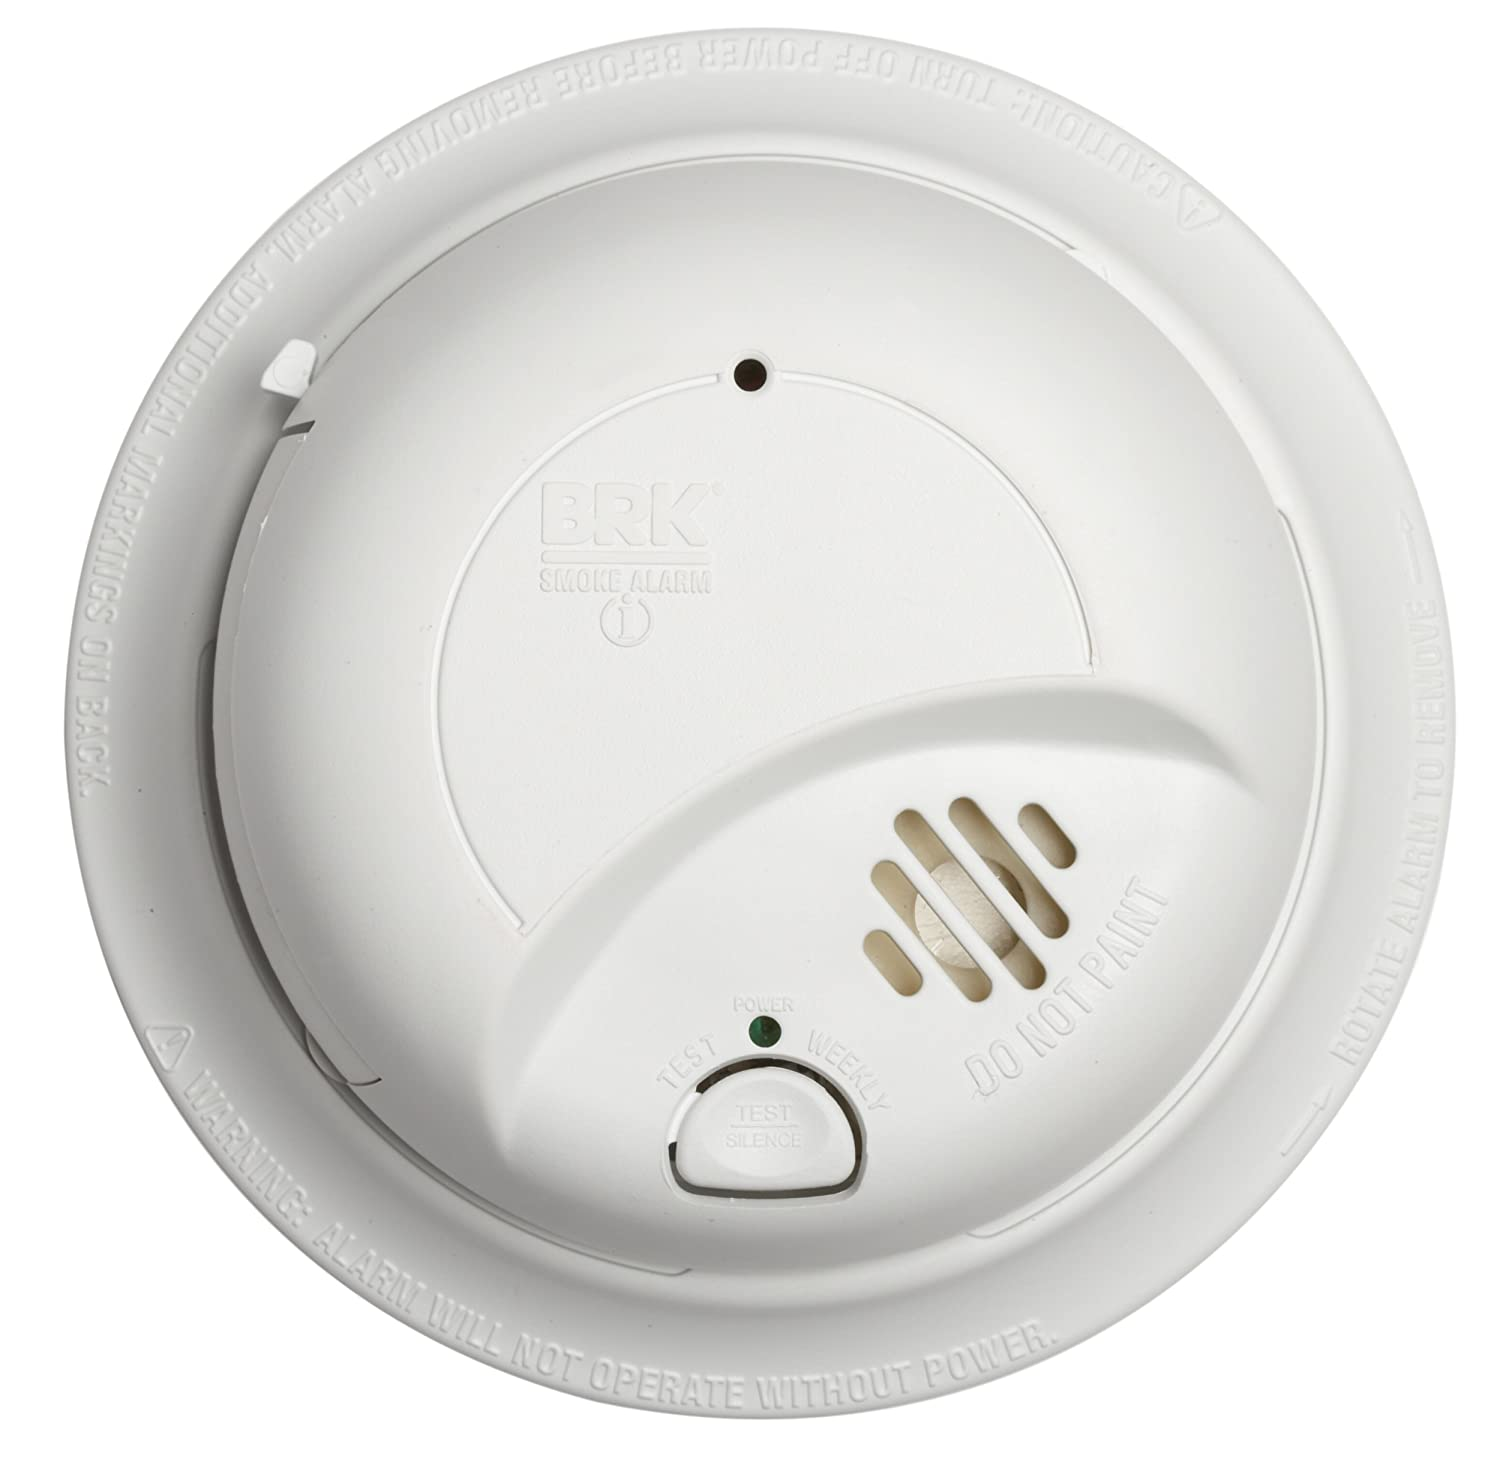 The Best Smoke Alarms Reviews Comparisons Of Top Rated Wiring To Mains This Hardwired Detector Features A Battery Backup Ensure Your Family Is Protected Even In Case Power Outage Available 6 Or 12 Packs